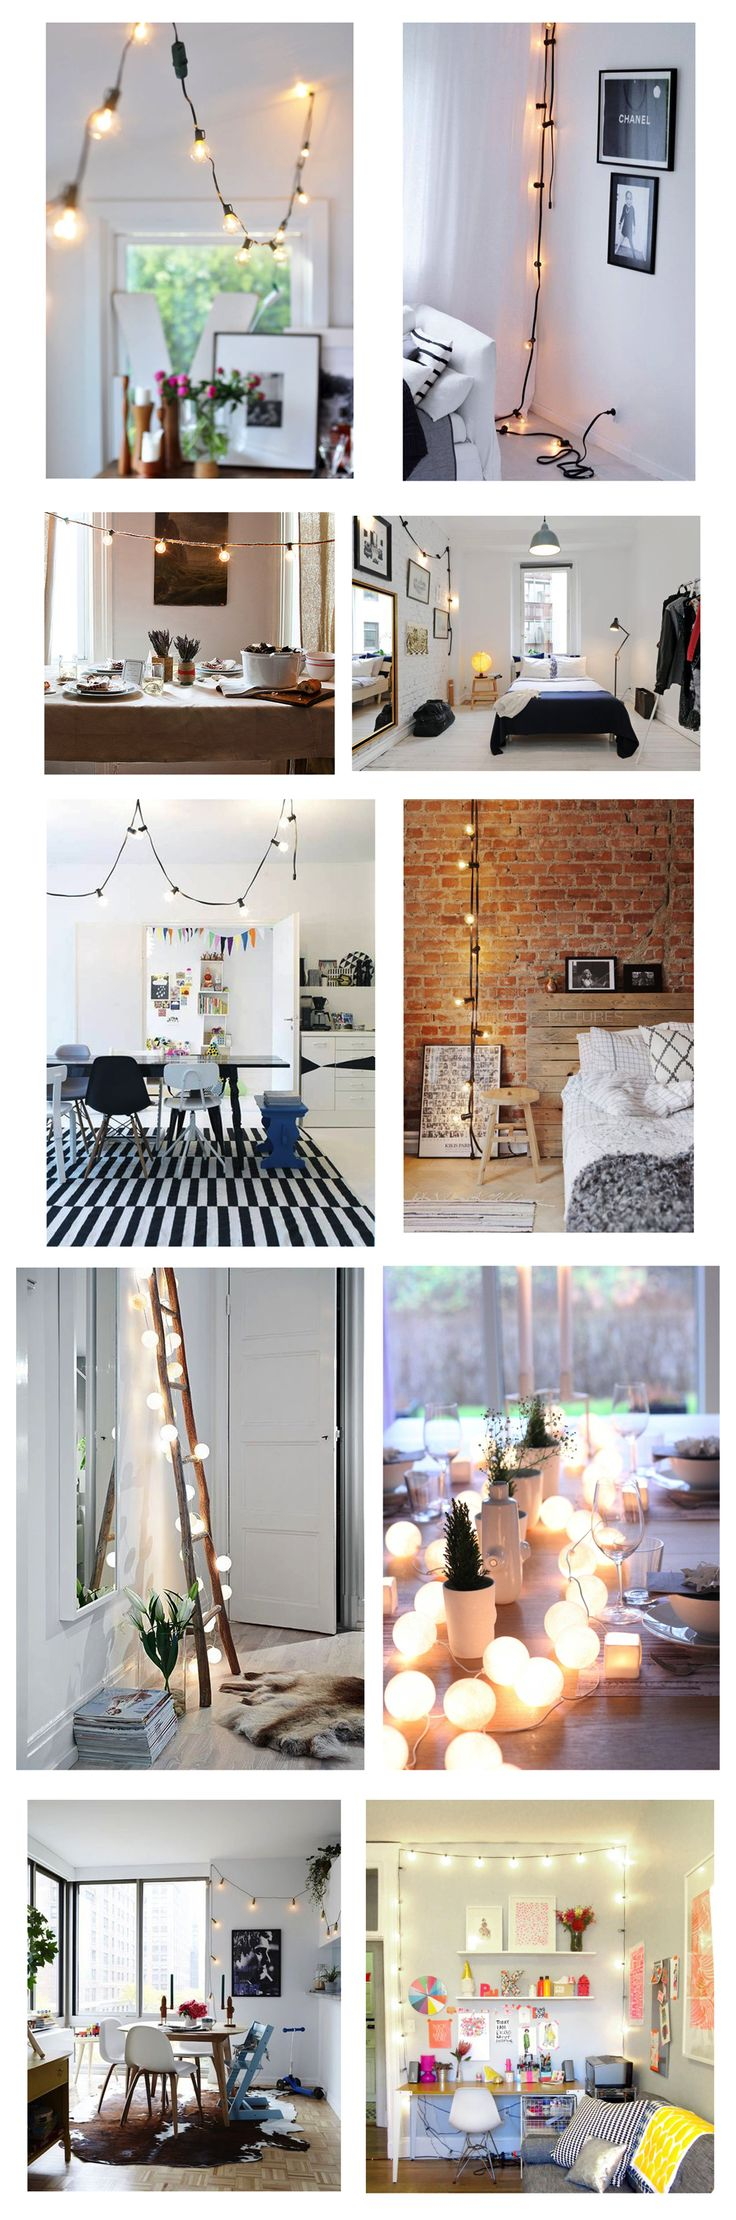 Decorating With Hanging Globe String Lights Indoors #design #interiors  #decor